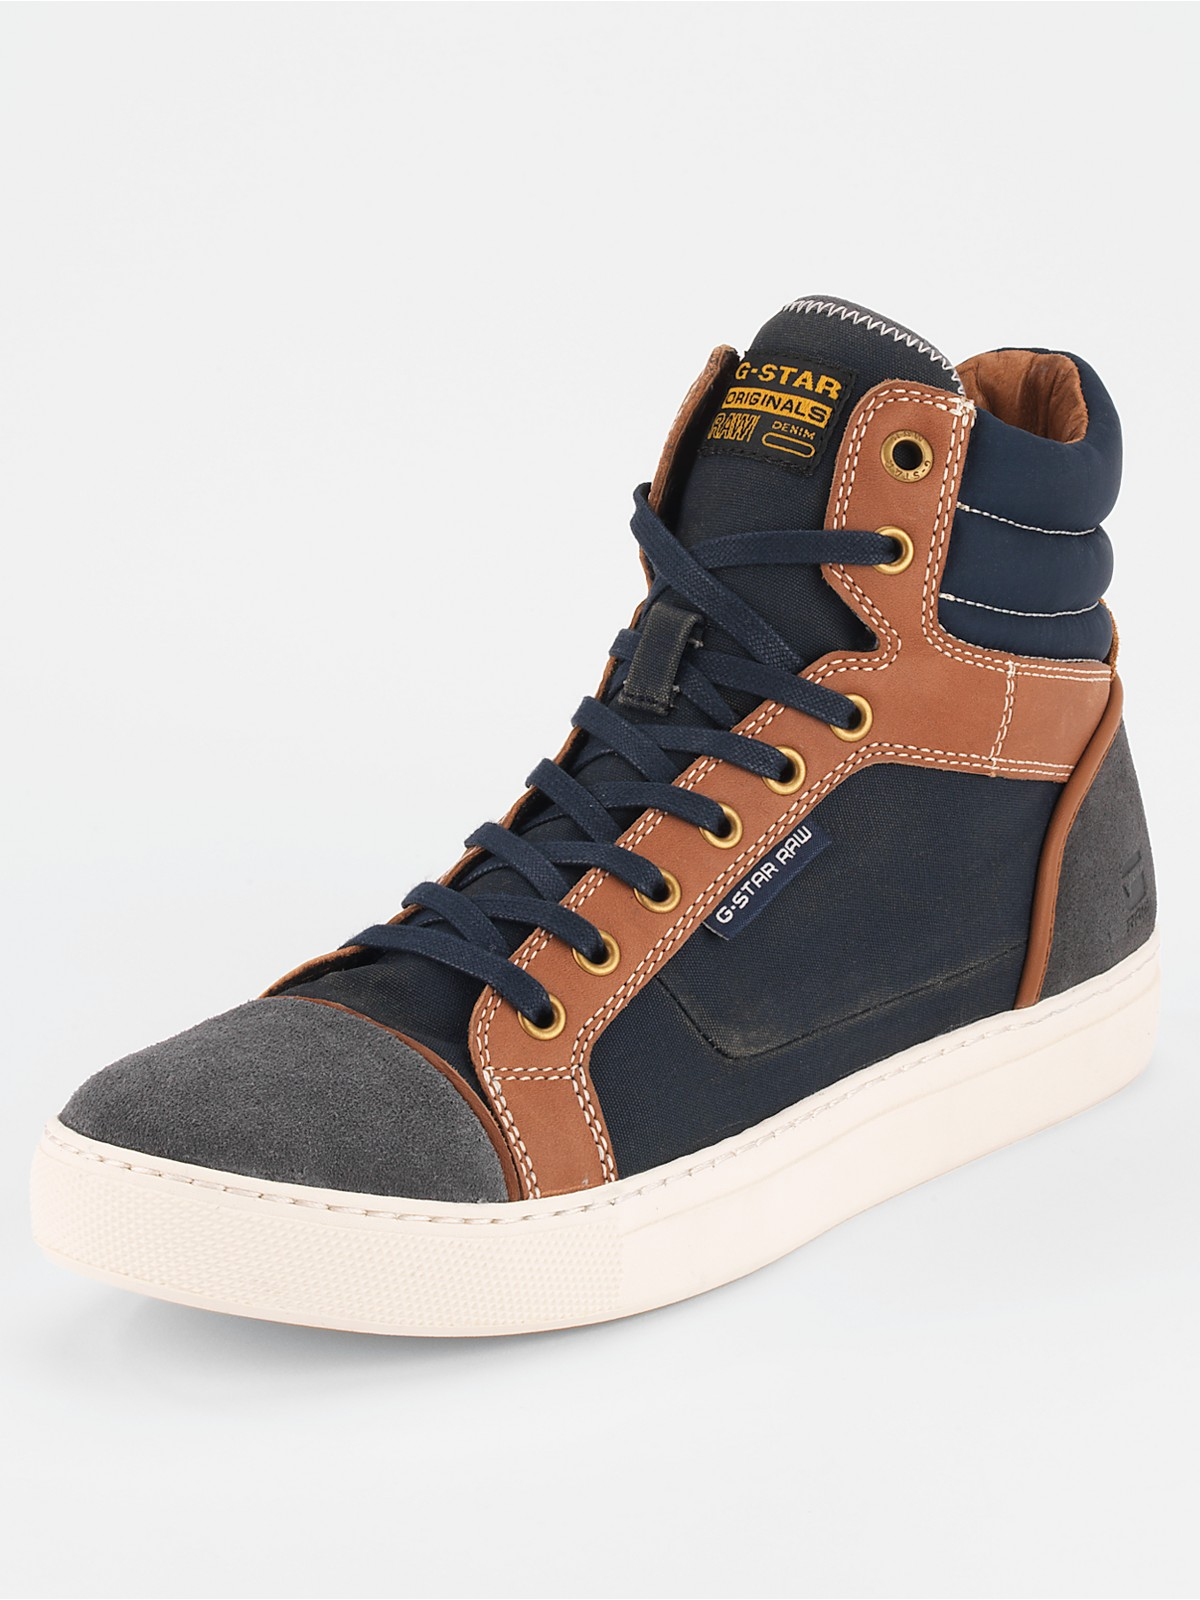 g star raw gstar raw mens samovar wax hi top boots in brown for men navy tan lyst. Black Bedroom Furniture Sets. Home Design Ideas